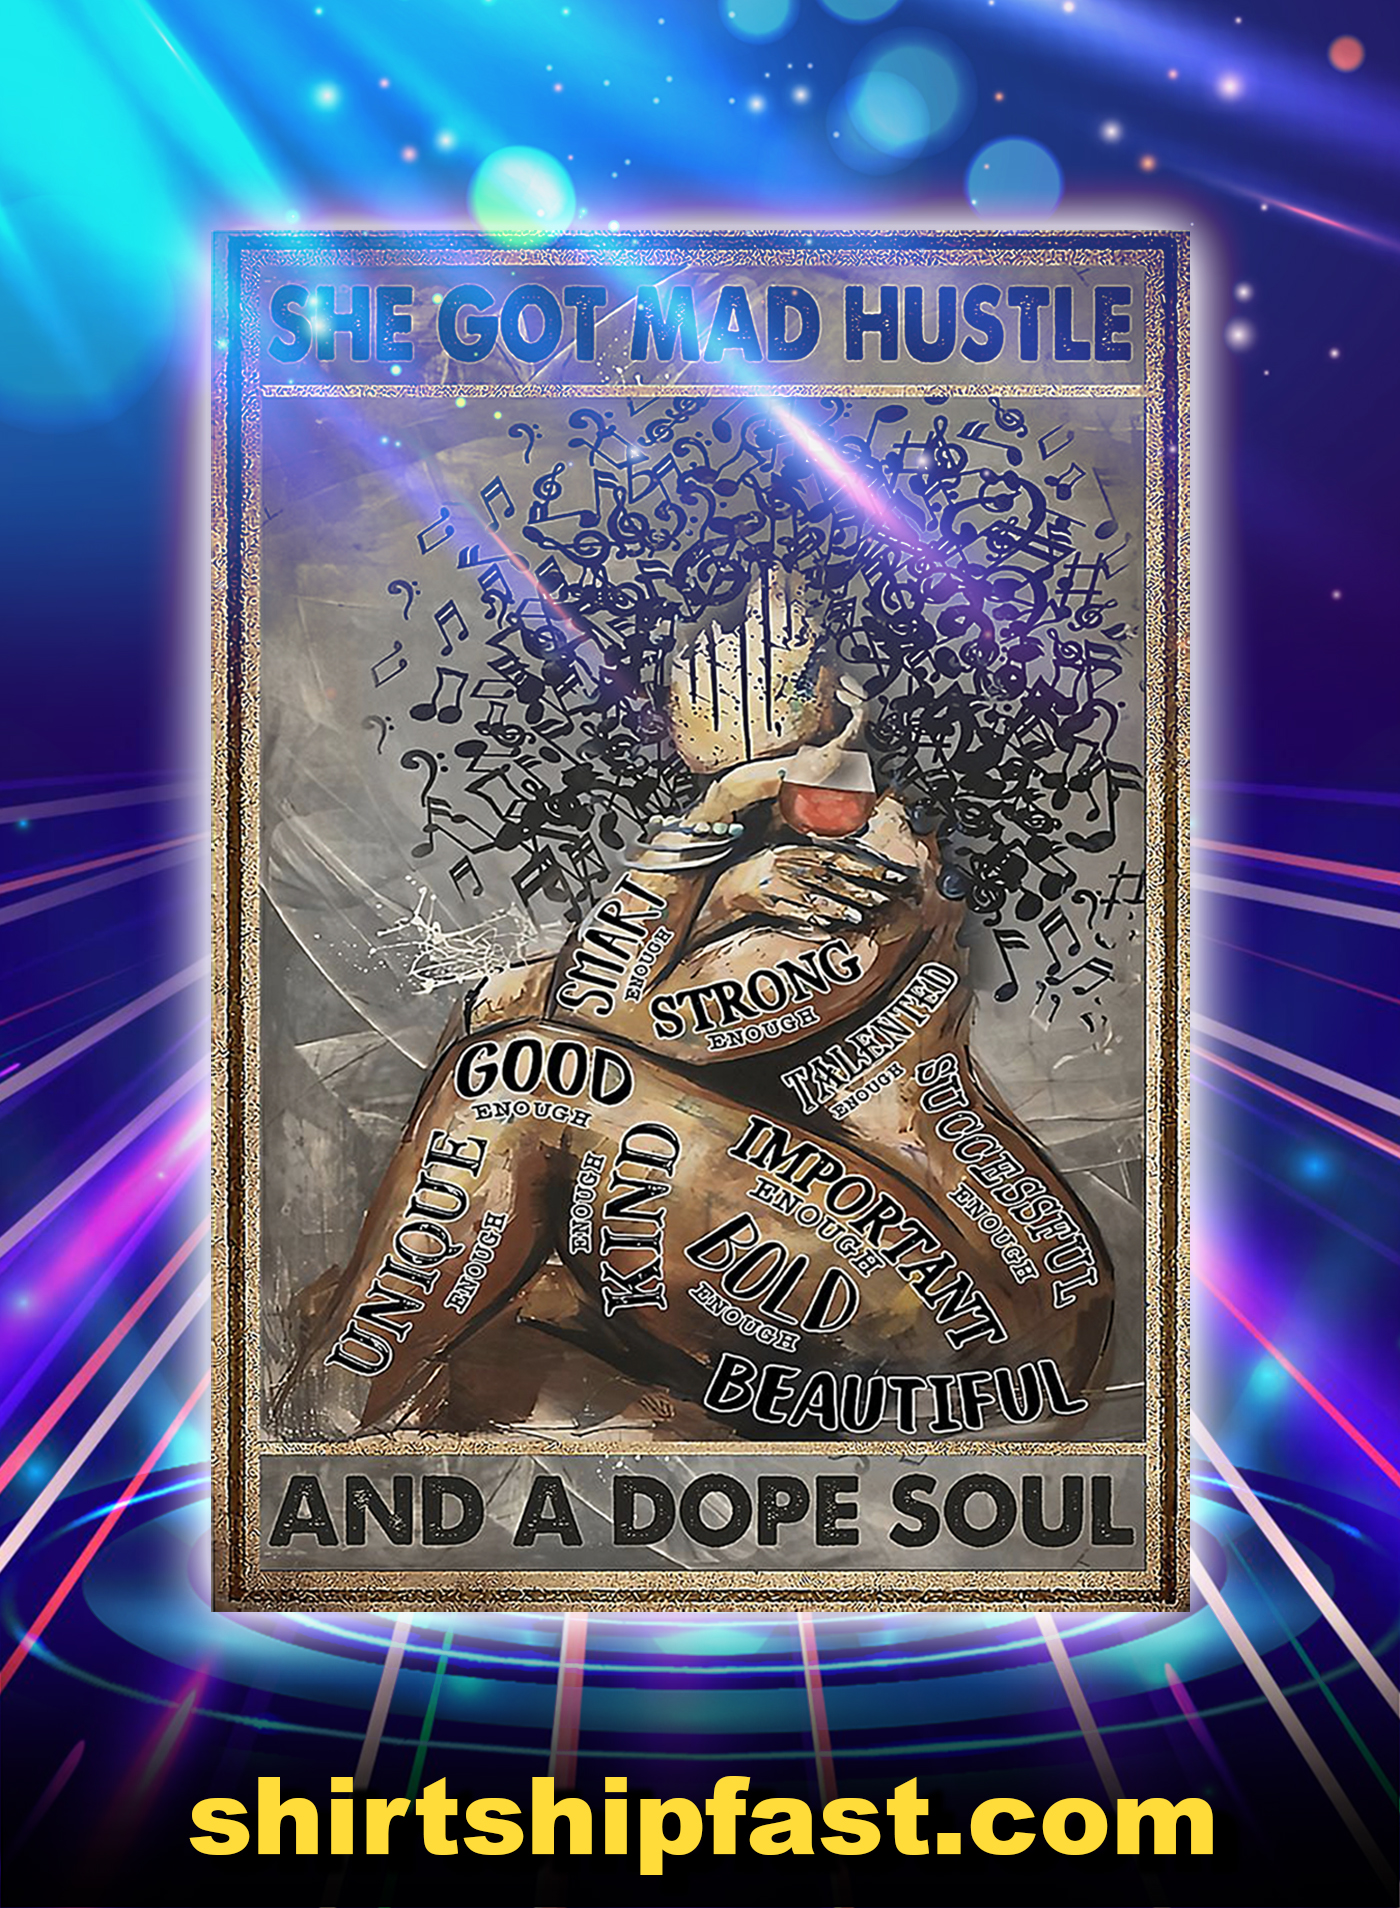 She got mad hustle and a dope soul poster - A1